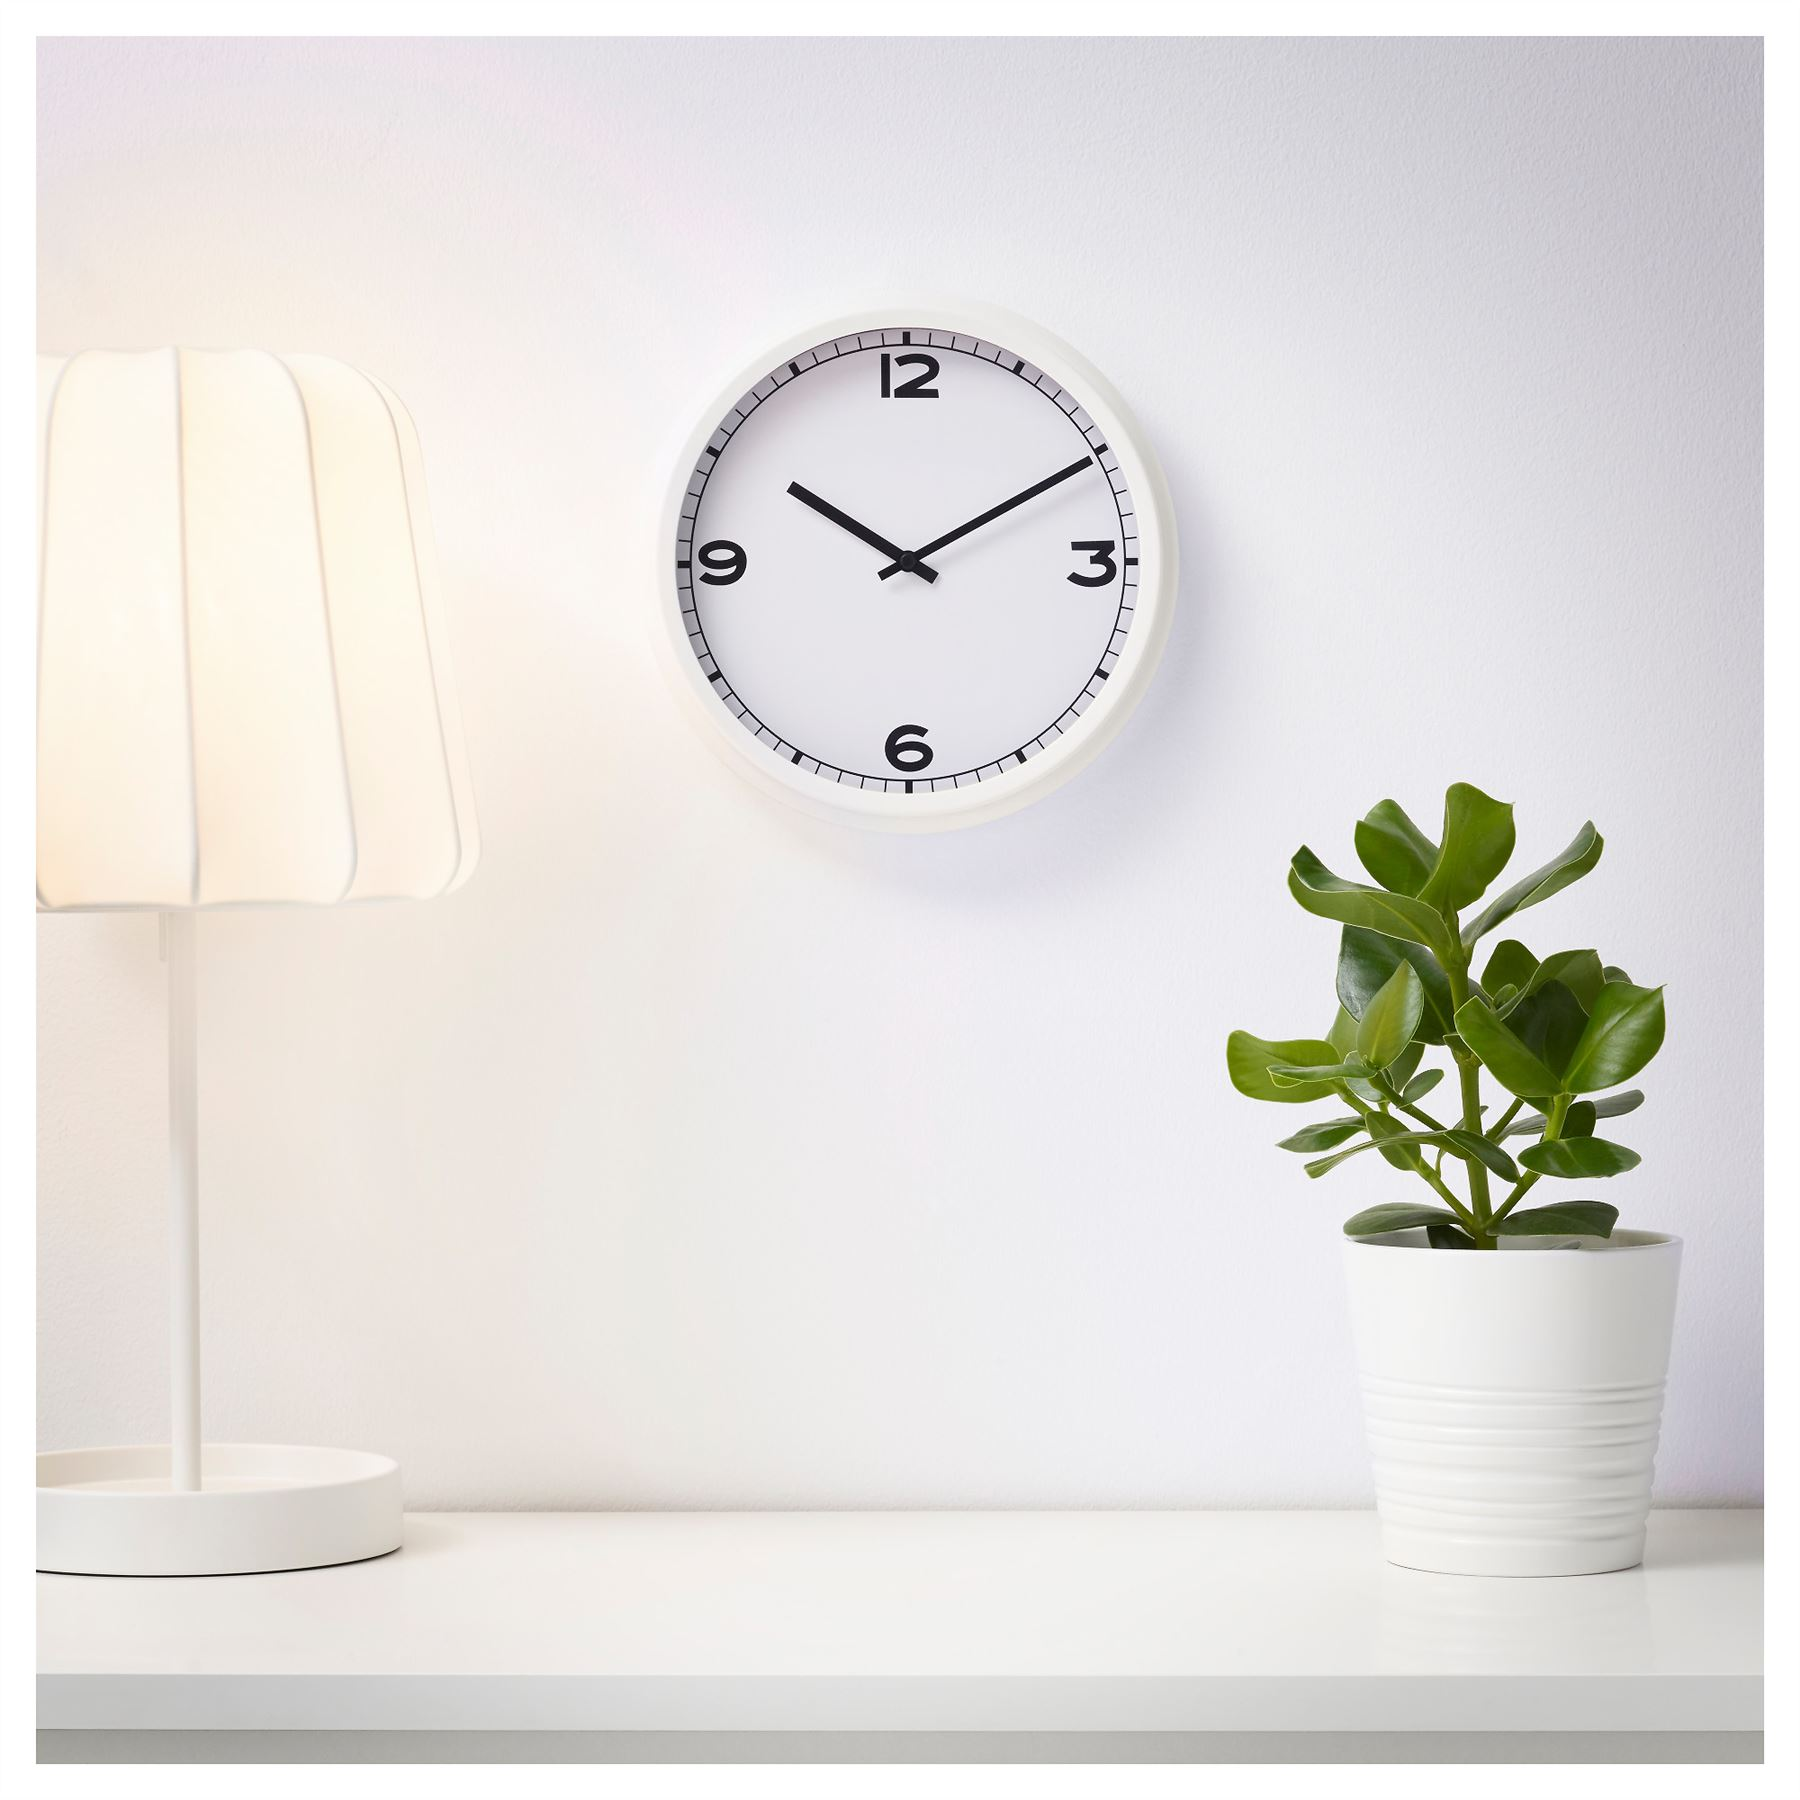 Ikea Pugg Wall Clock White Home Office Work Ebay